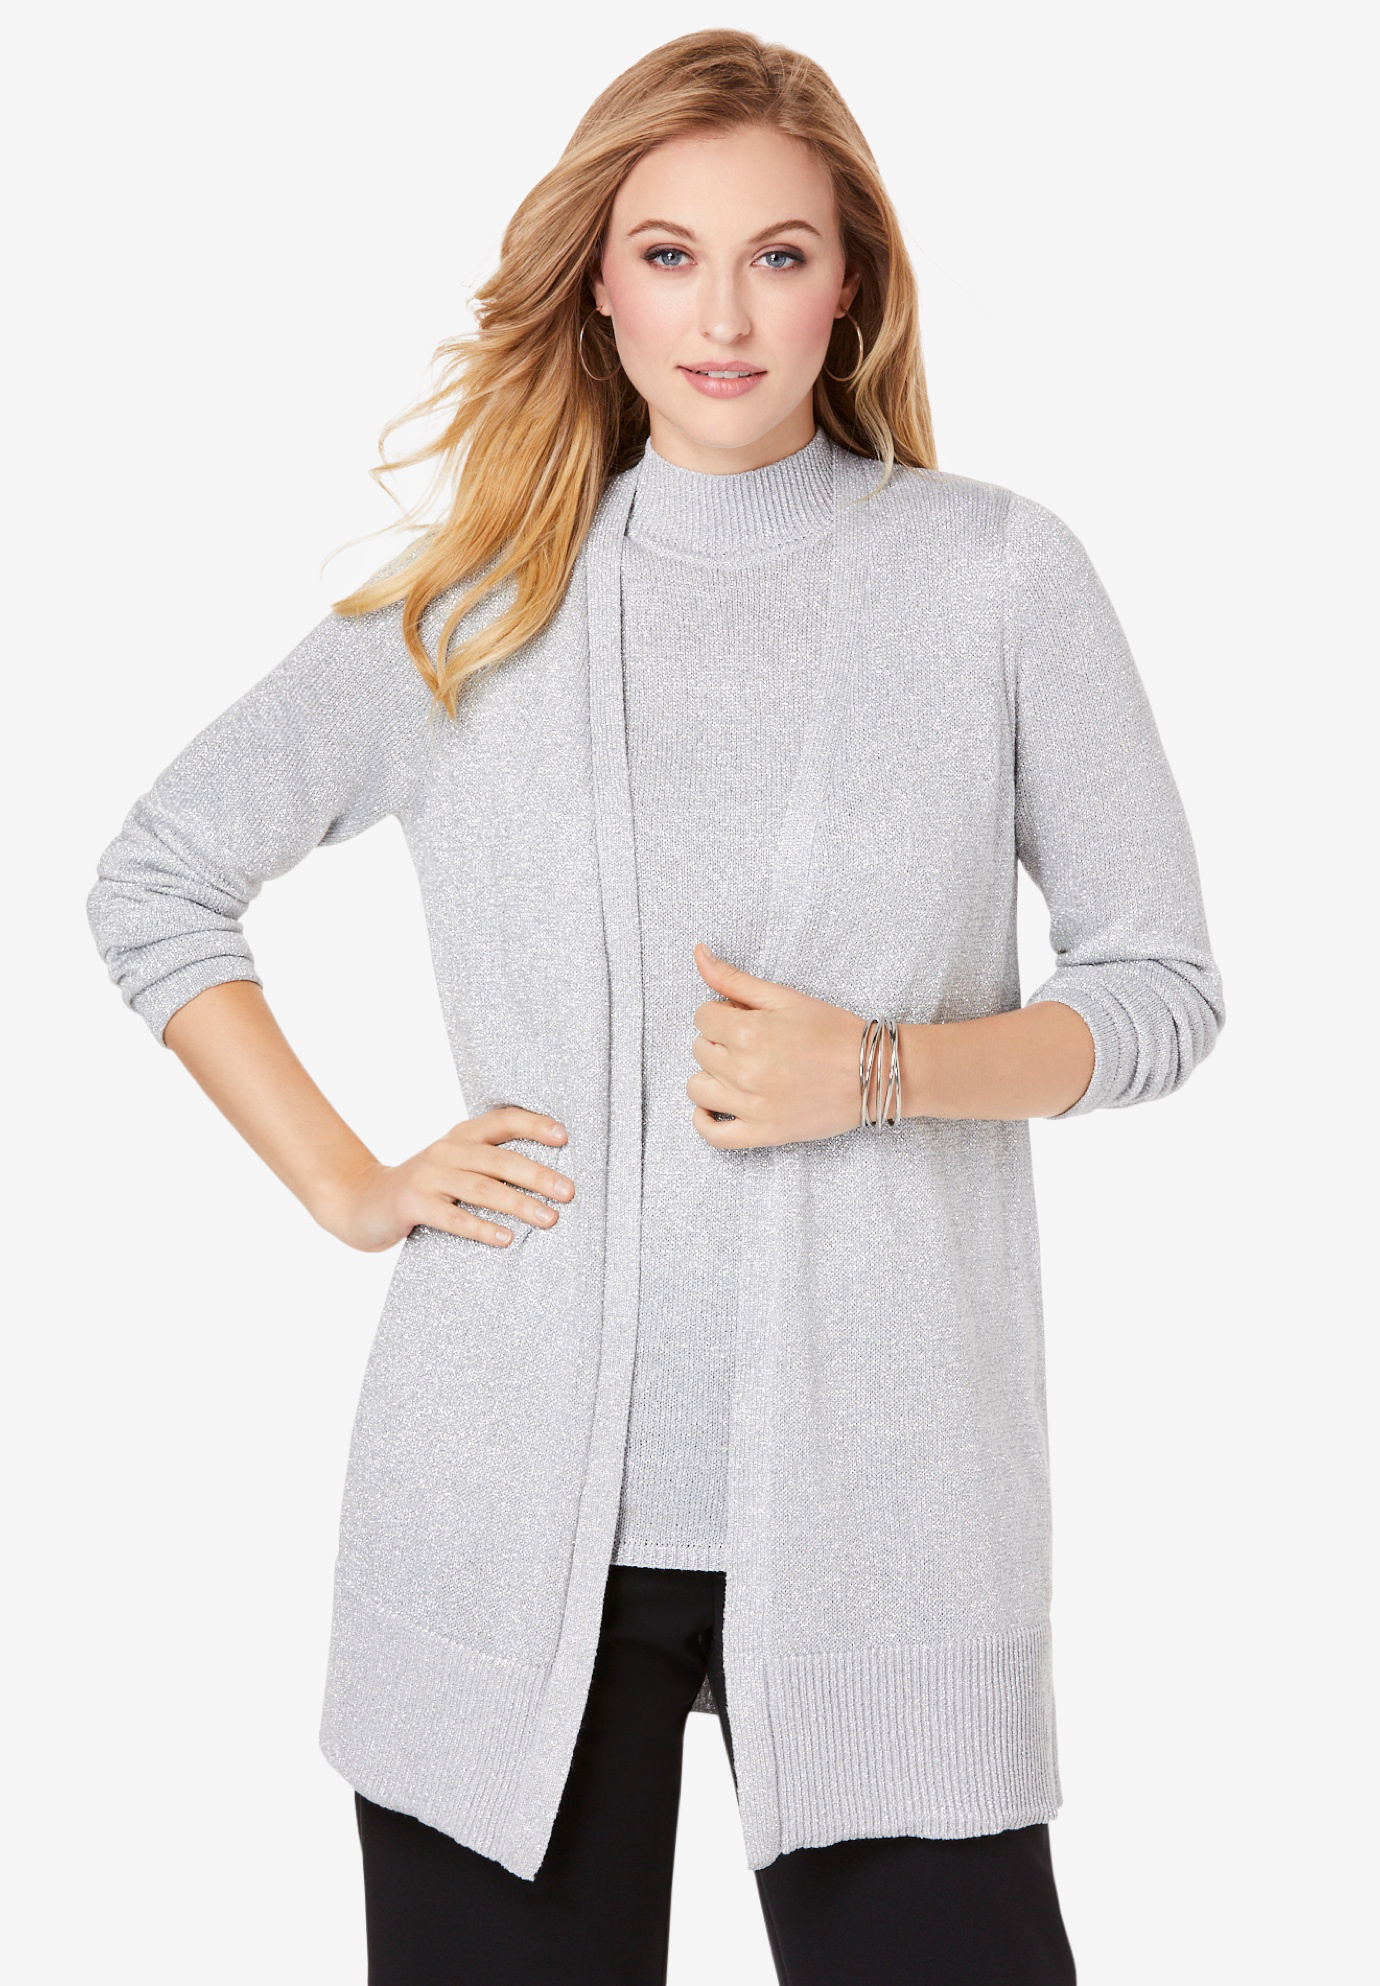 Shimmer Cardigan Sweater,